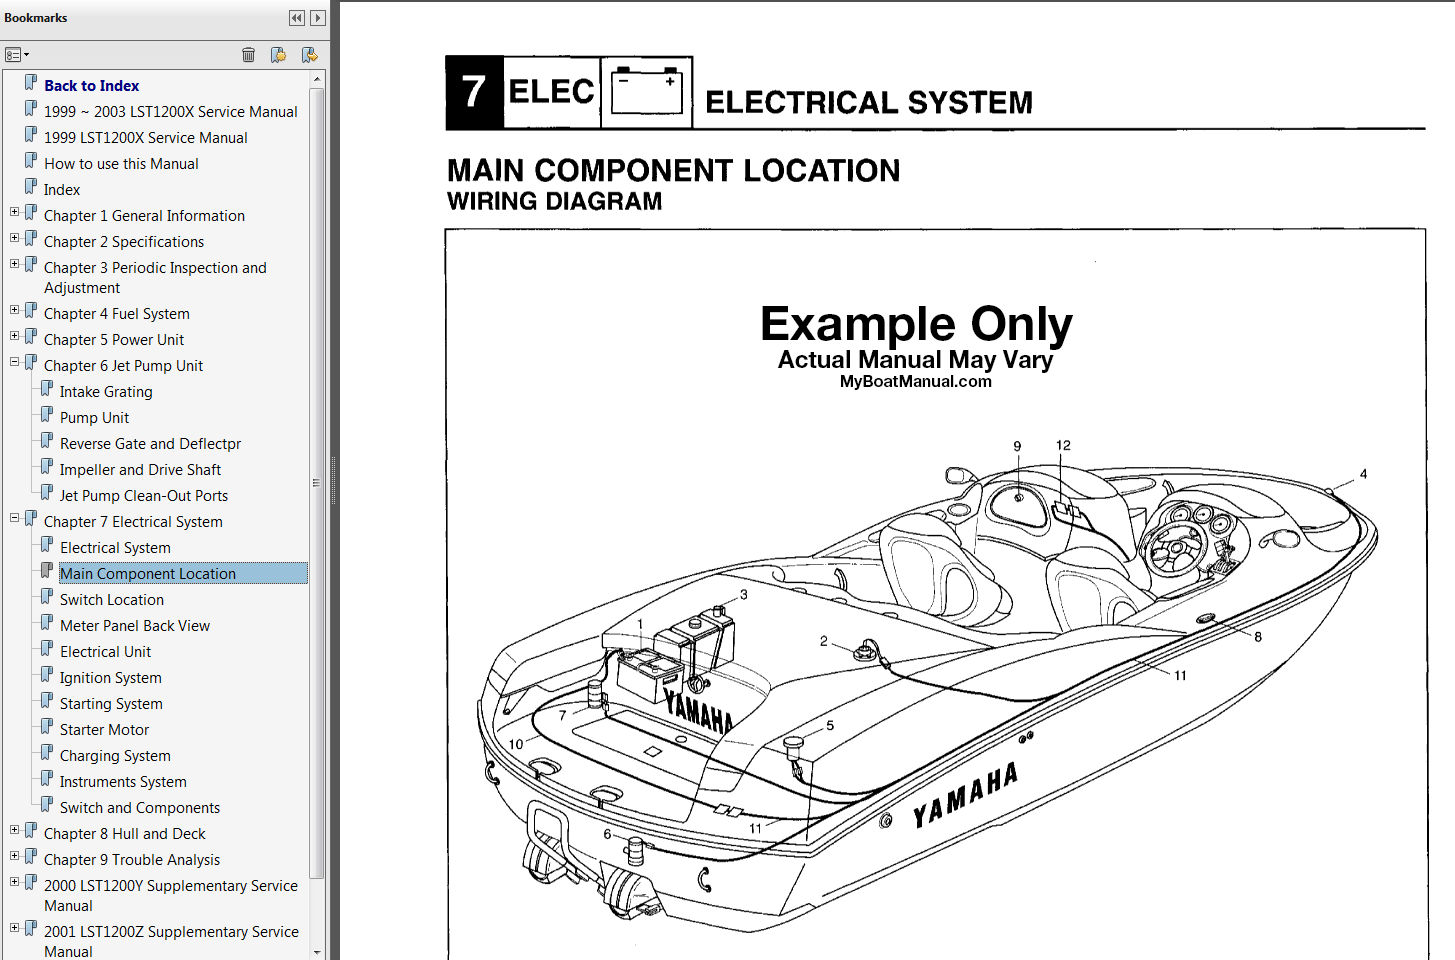 sample1?resize=665%2C439&ssl=1 diagrams 521450 jet boat wiring diagram jet boat engine harness jet boat wiring diagram at mifinder.co